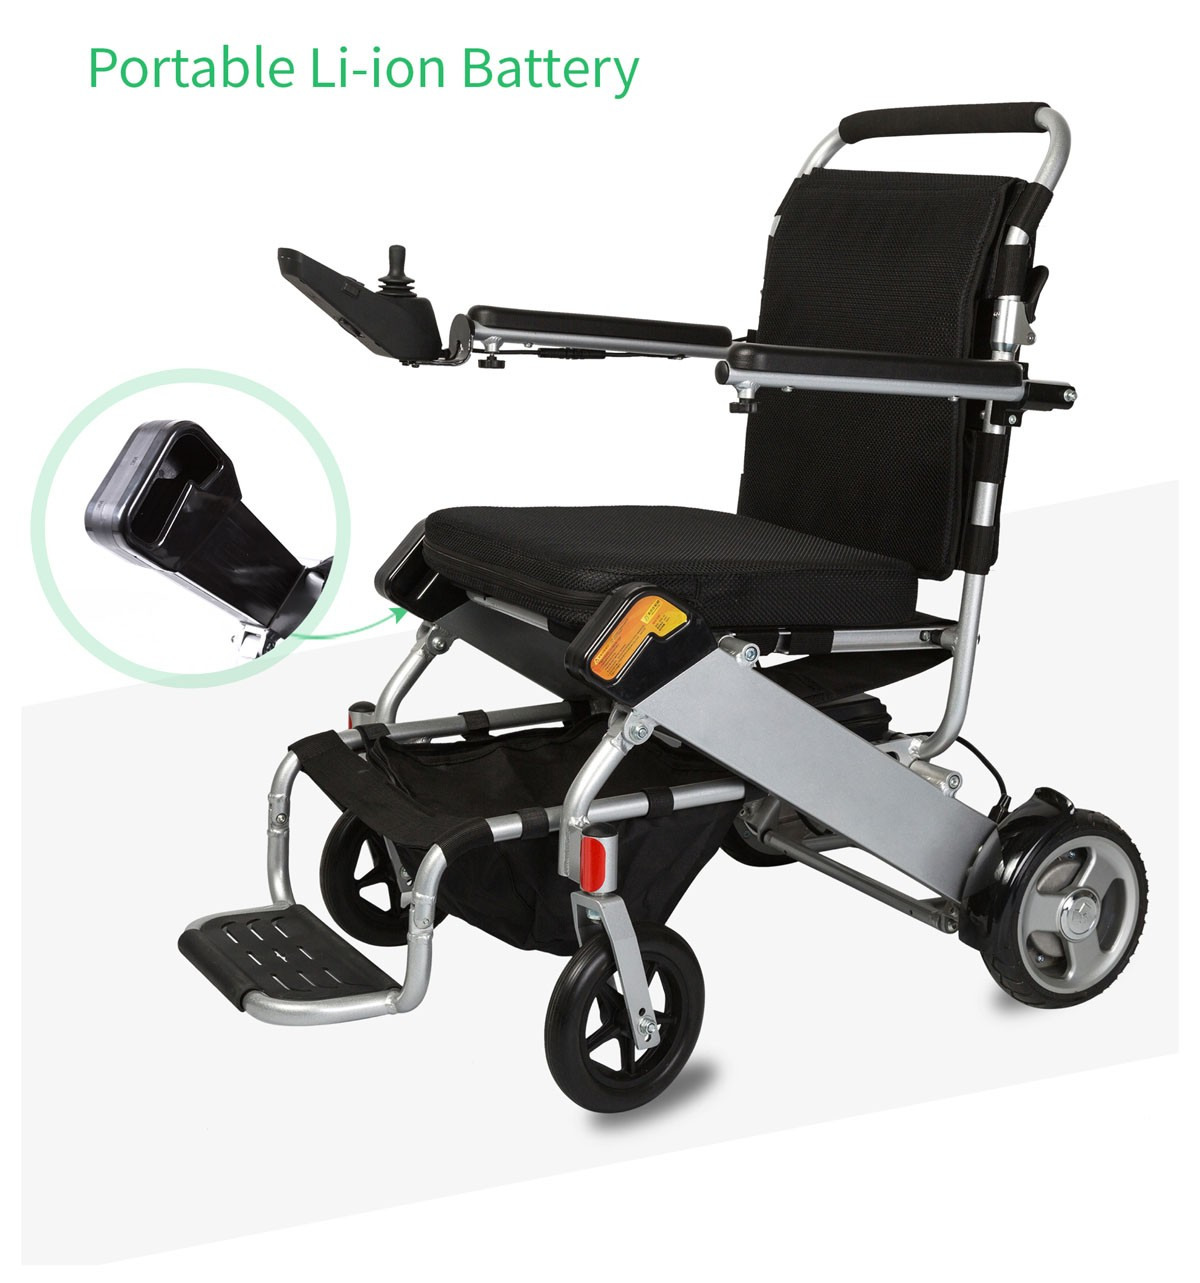 Power Chair Rental Karman Tranzit Go Foldable Lightweight Power Wheelchair